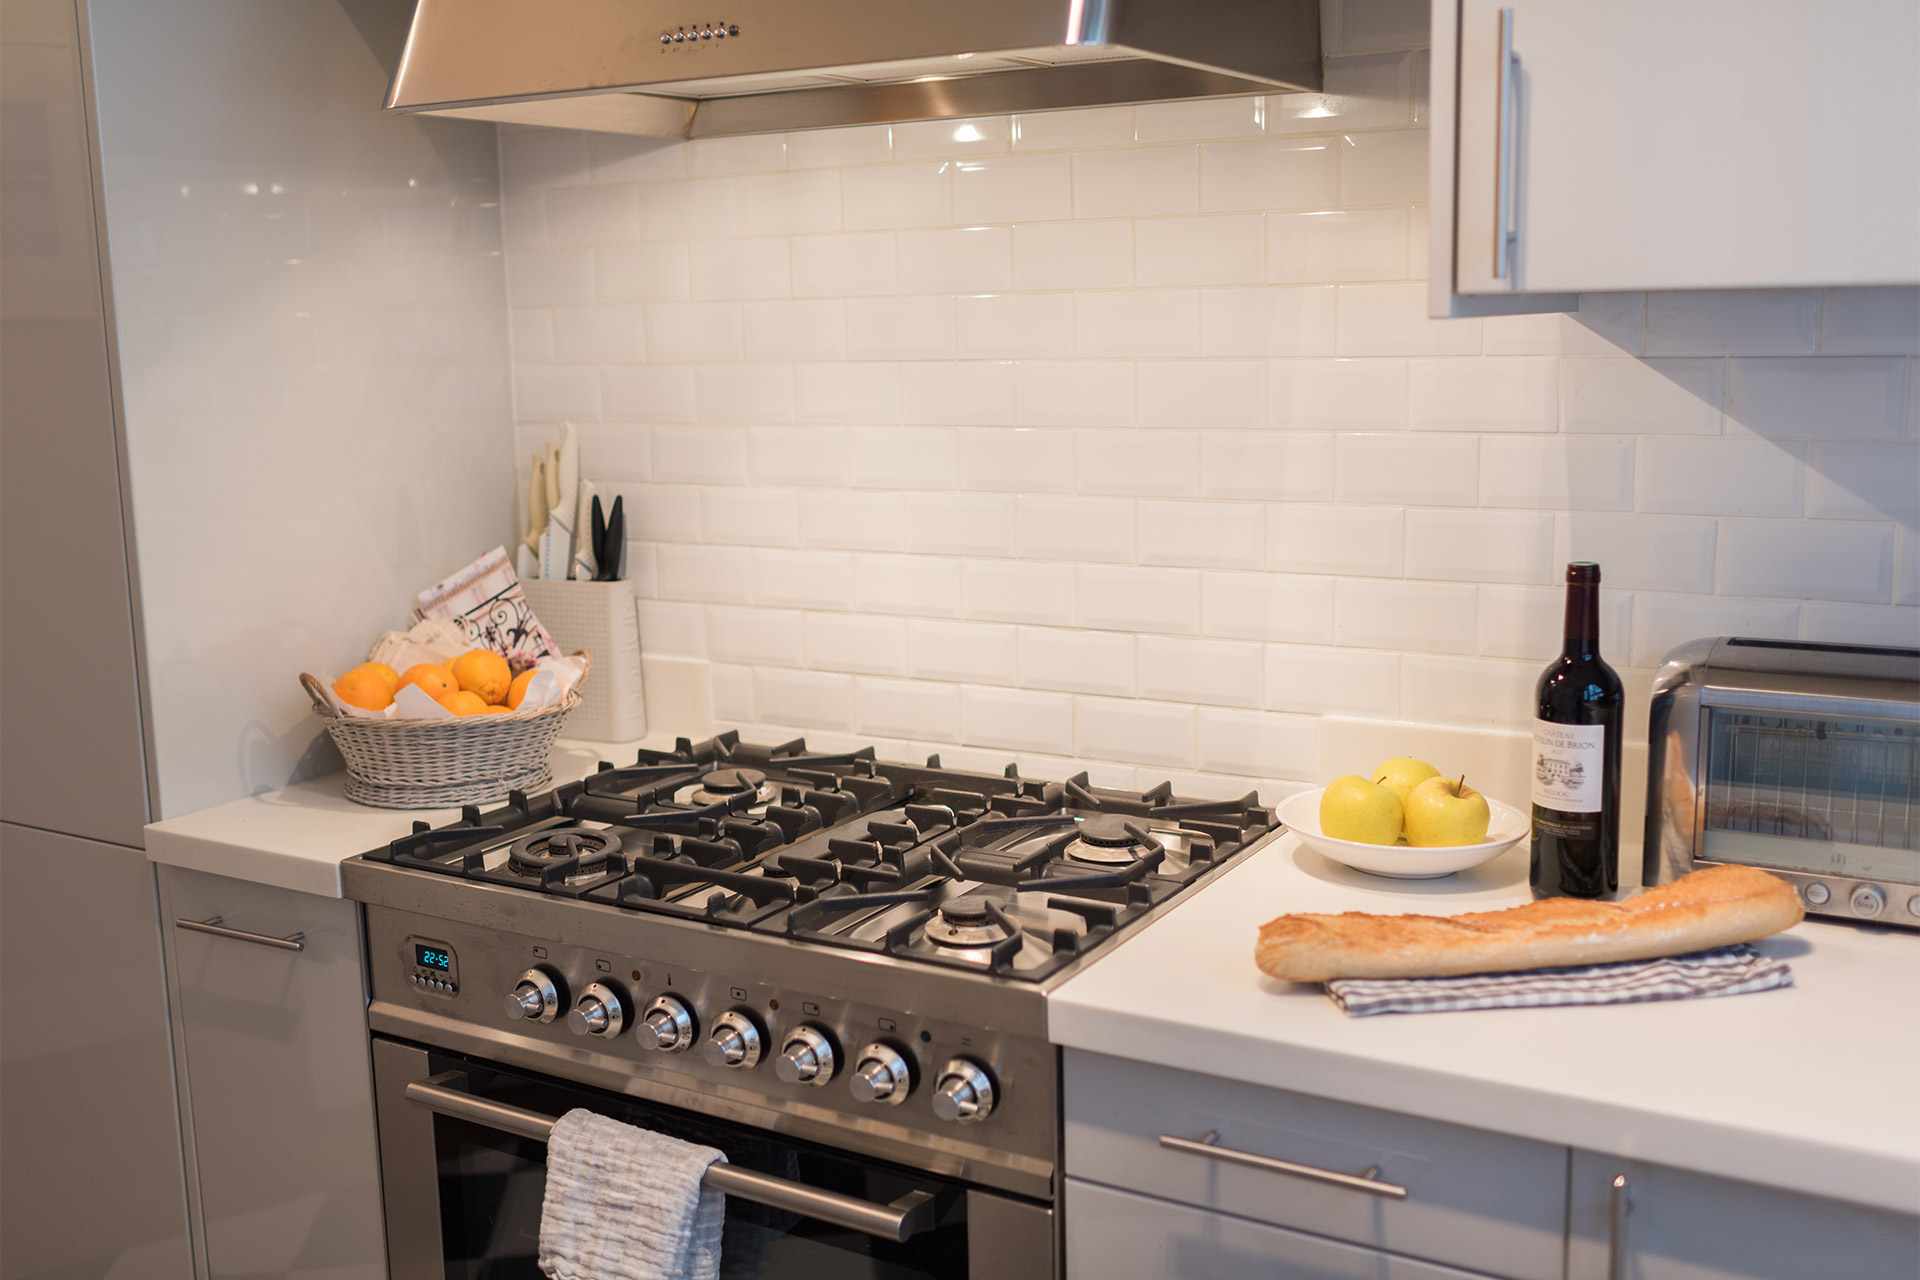 Four burner gas stove in the Maubert vacation rental offered by Paris Perfect